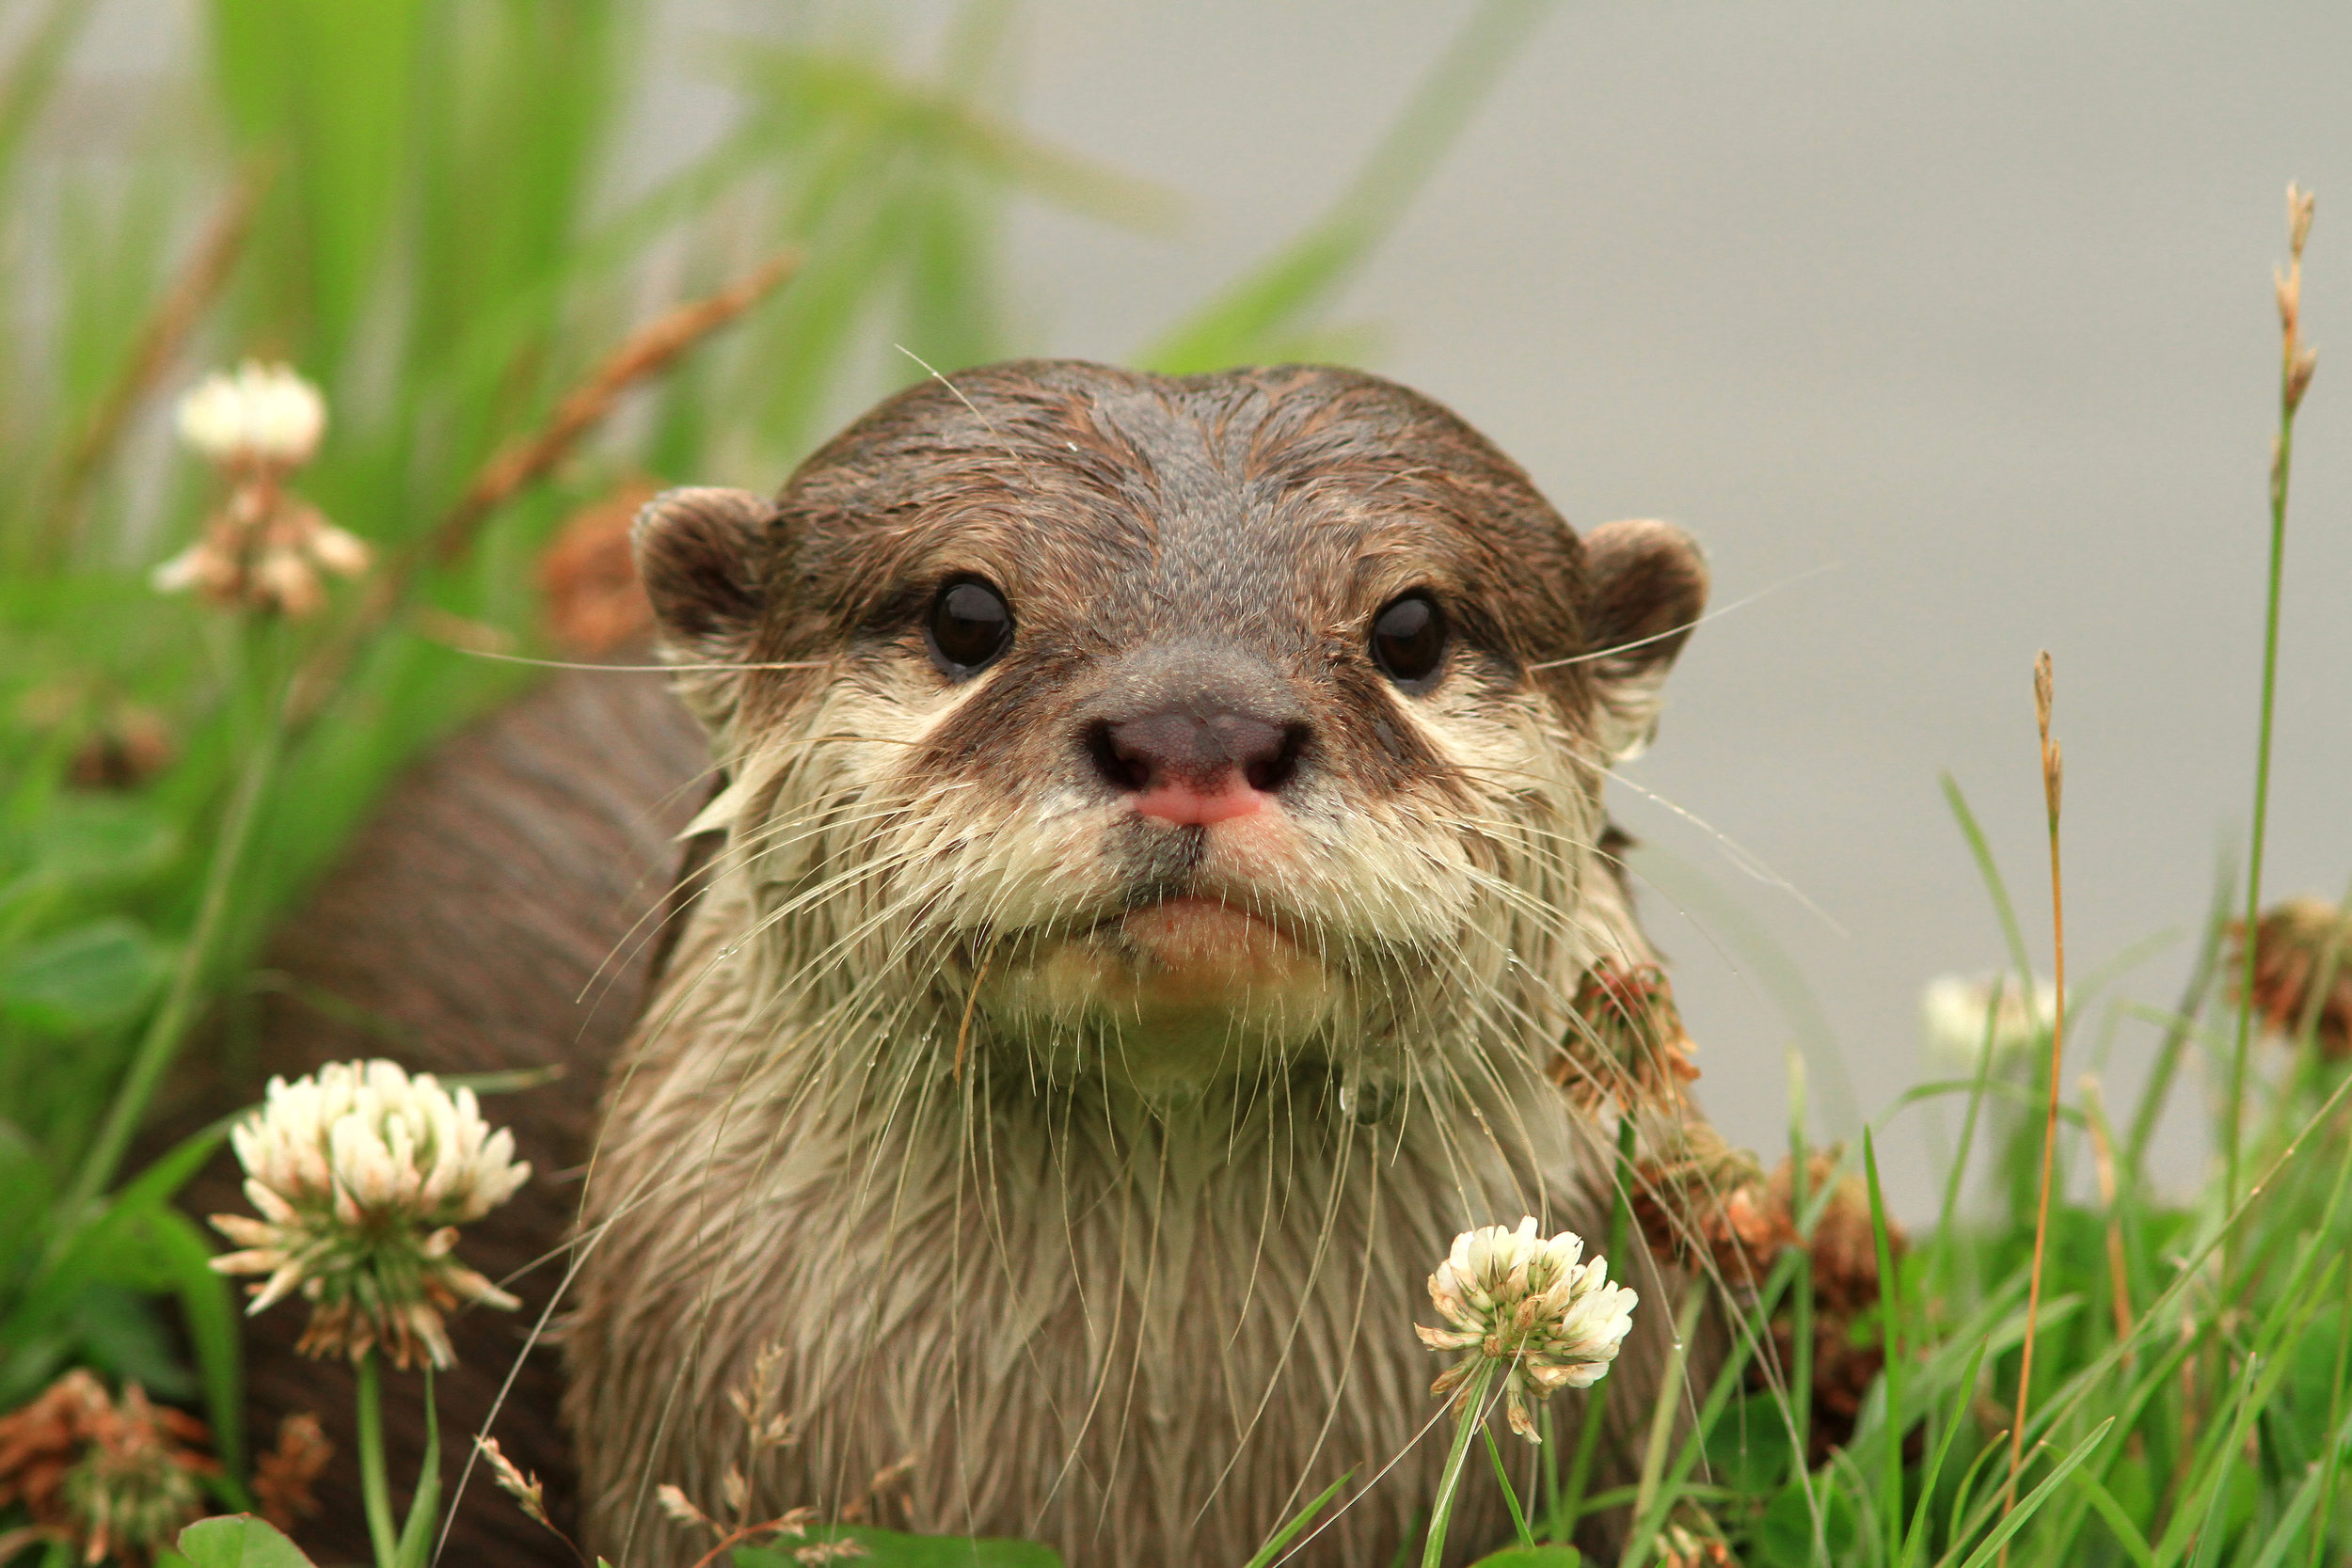 Otter Poses Among the Flowers